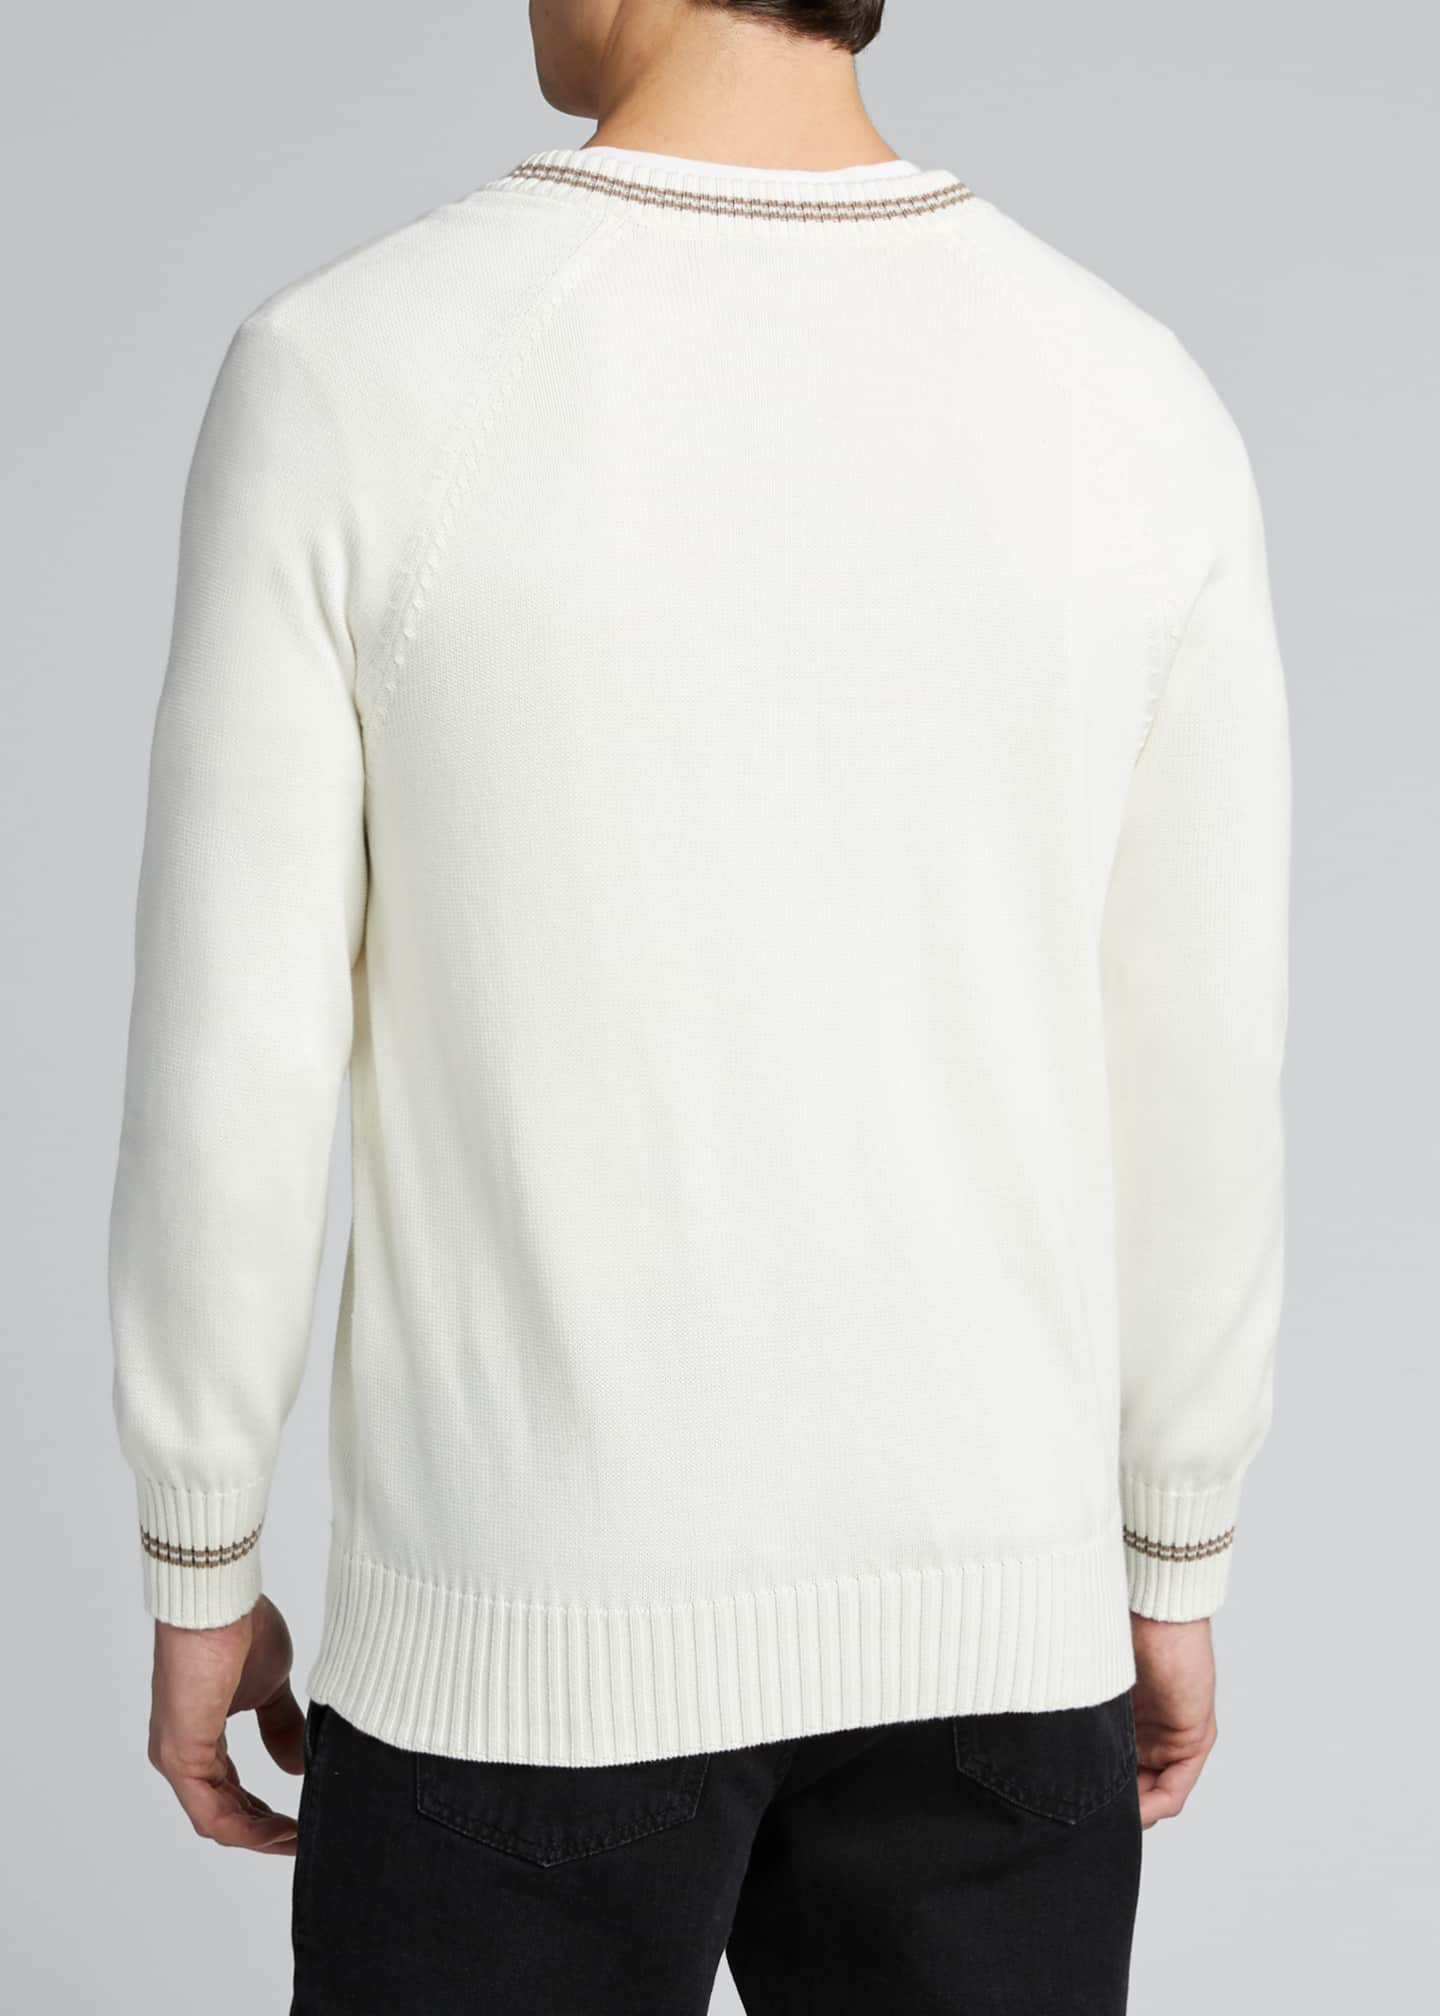 Image 2 of 5: Men's V-Neck Sweater with Contrast Tipping